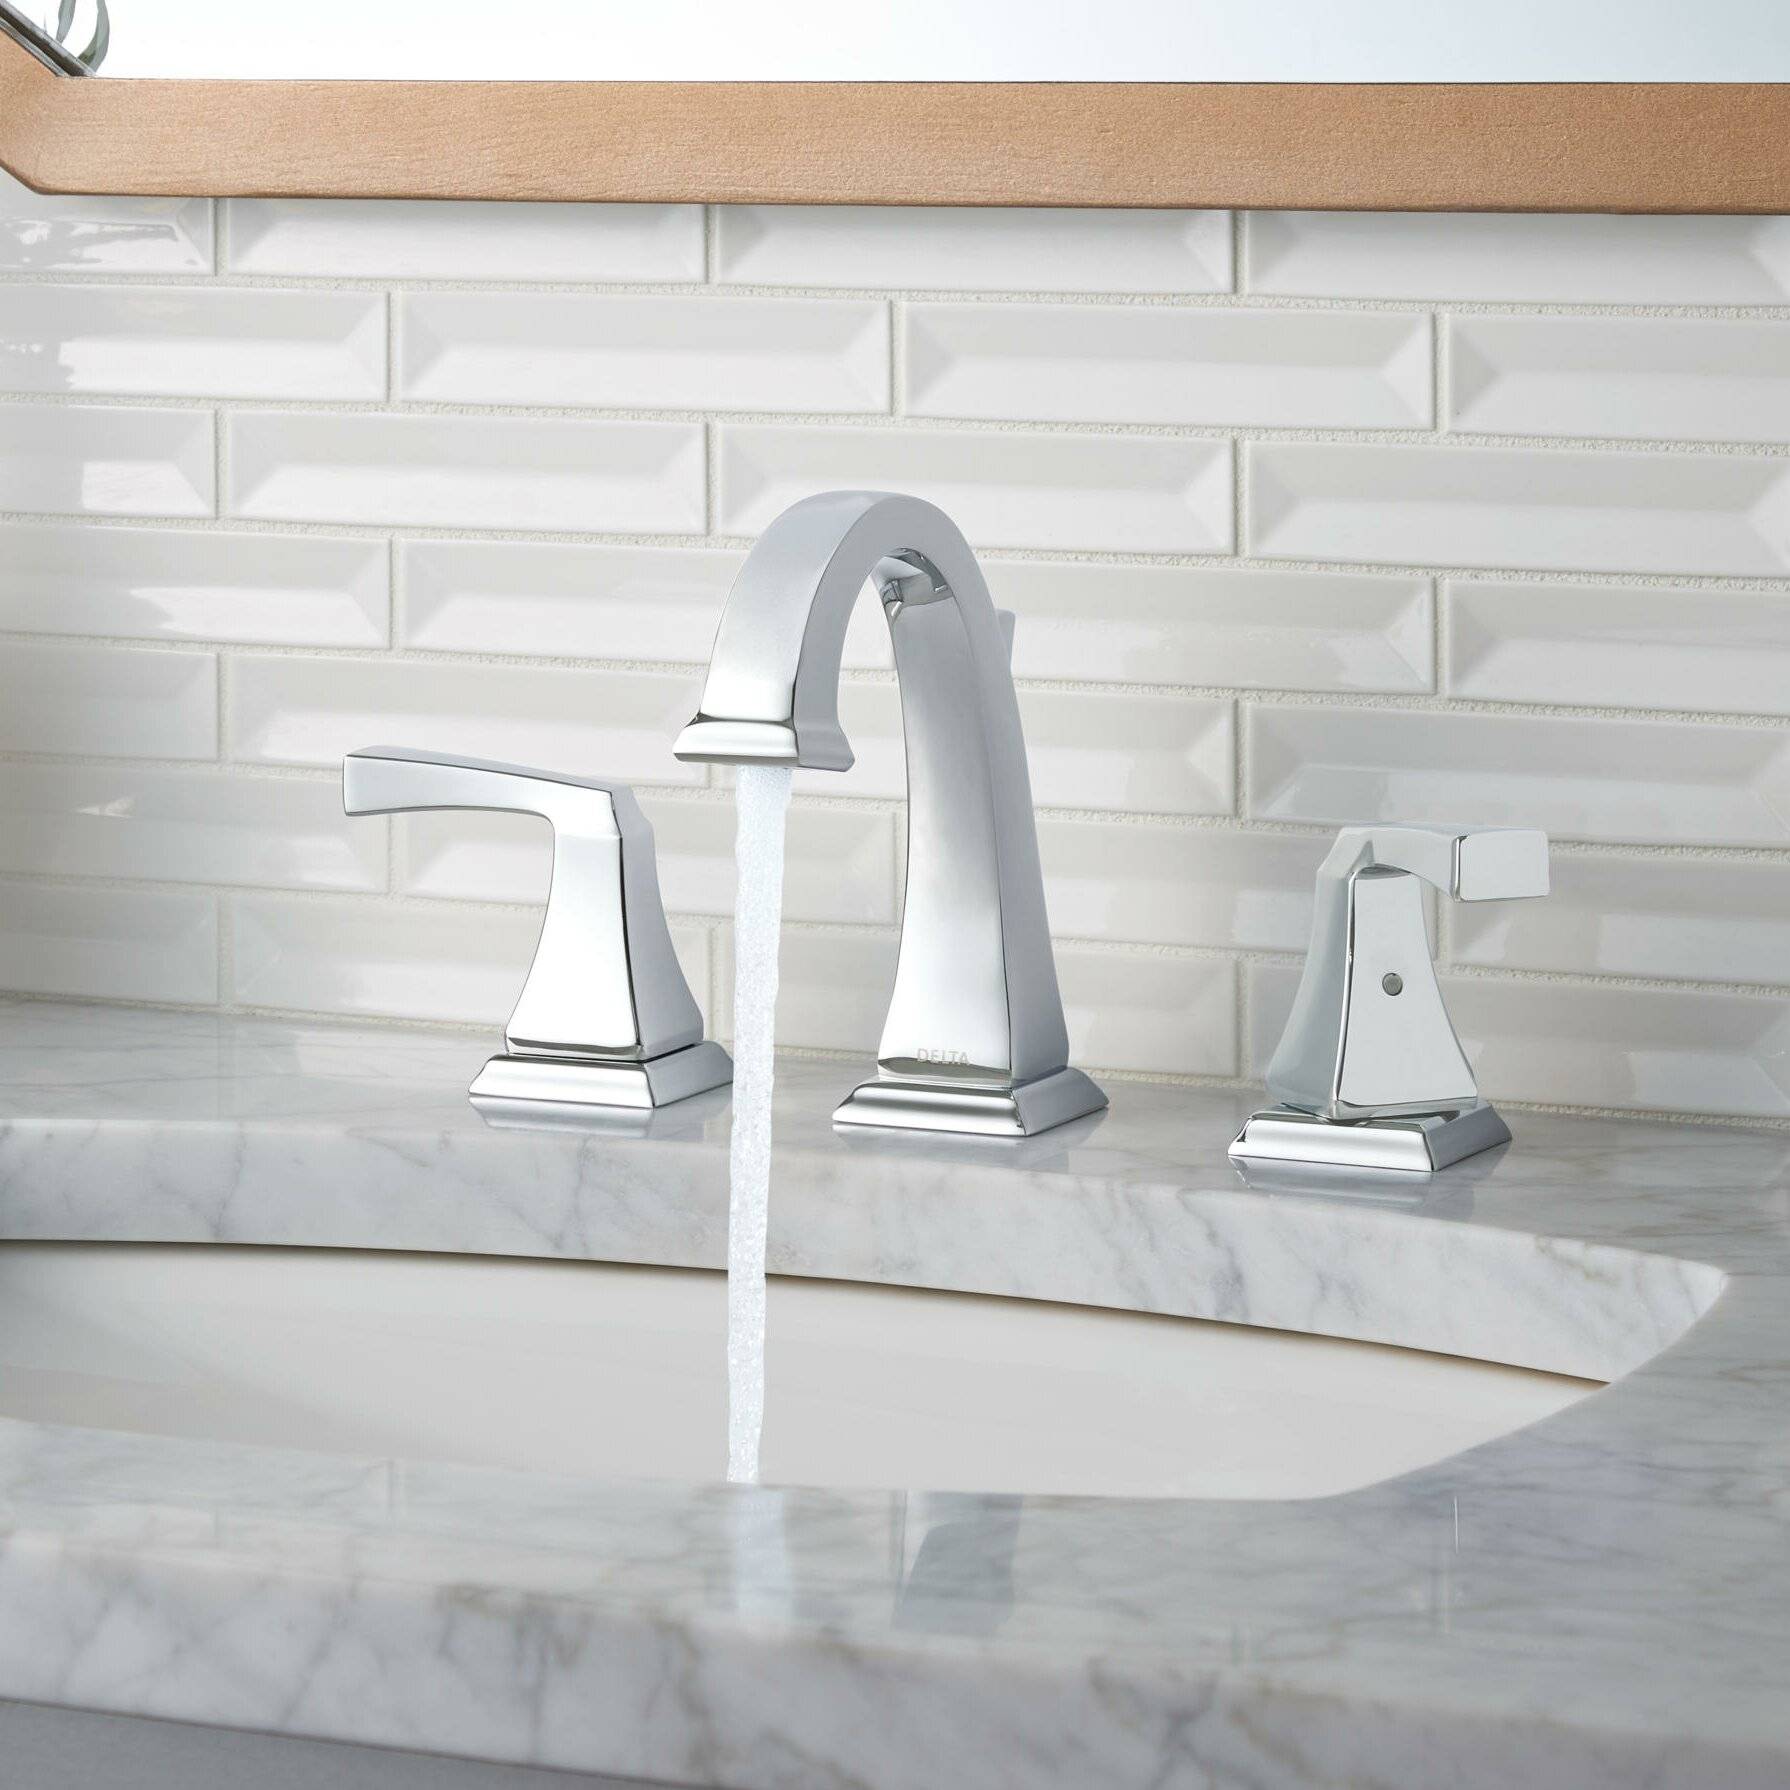 Inch Spread Bathroom Faucets - Vansaty.com